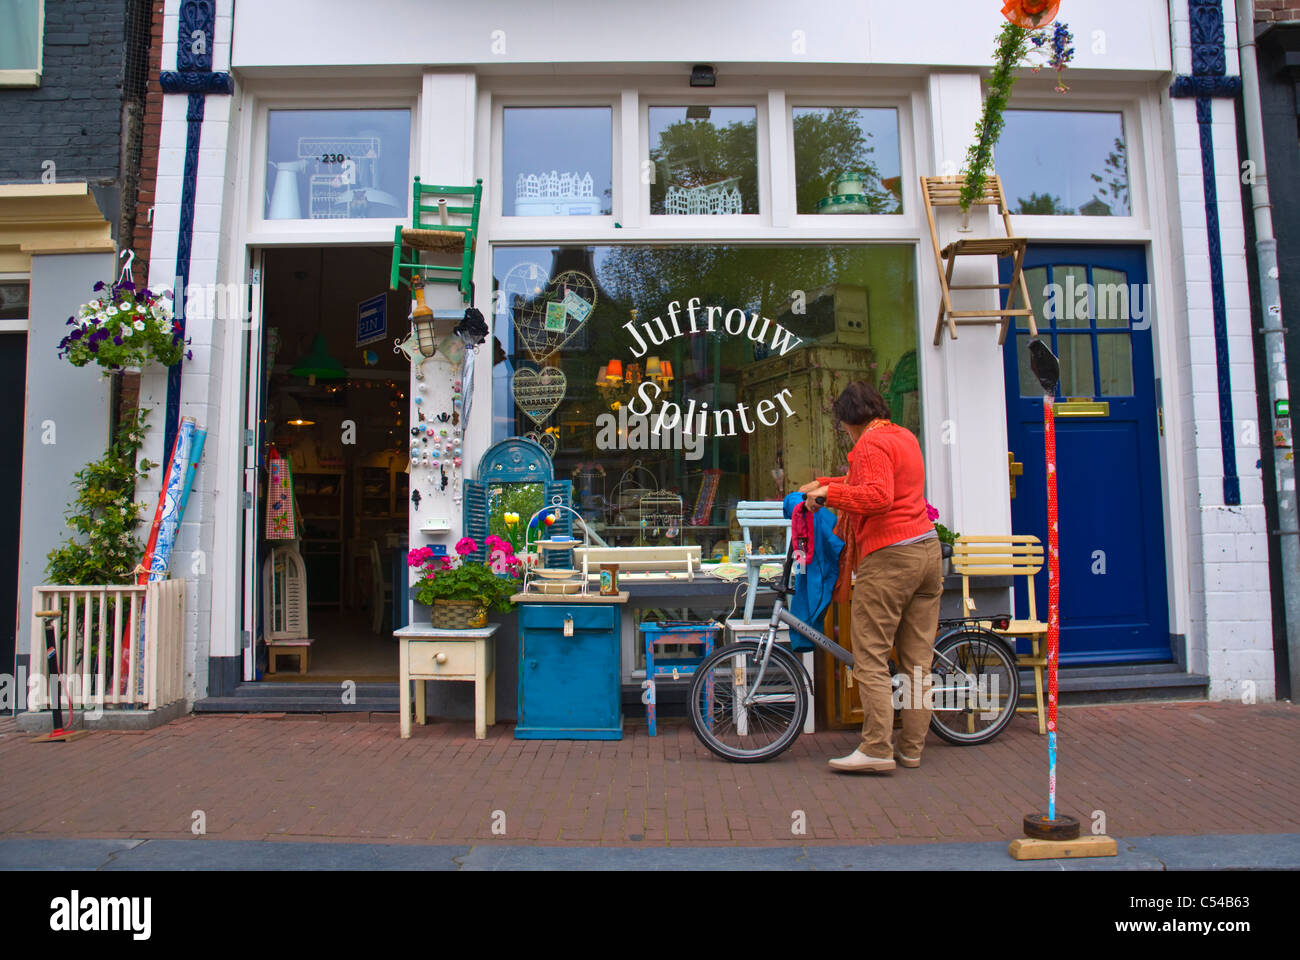 Juffrouw Splinter second hand antiques shop Prinsengracht canal central Amsterdam the Netherlands Europe - Stock Image